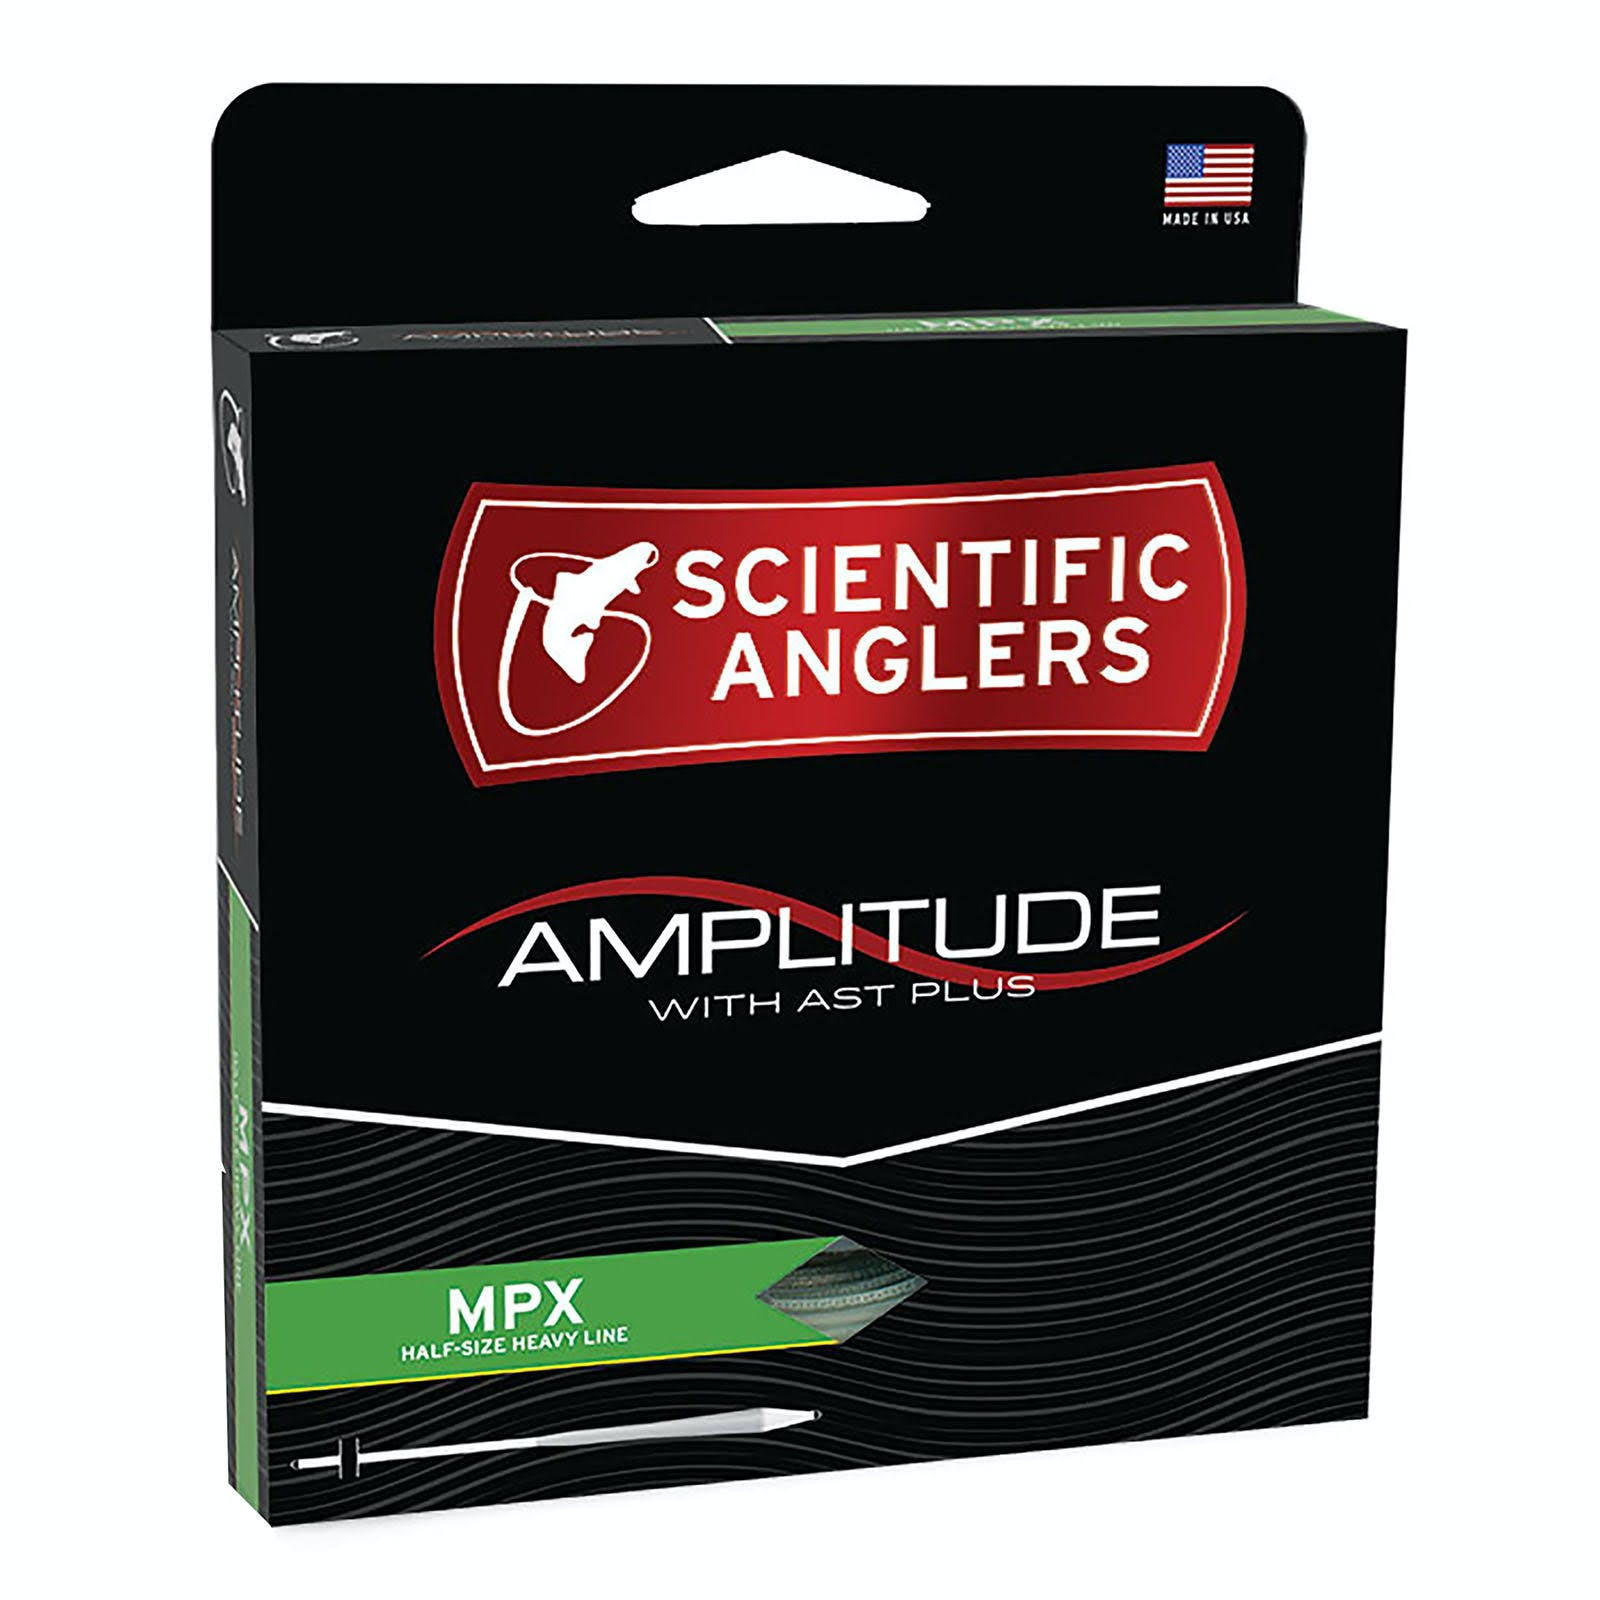 Scientific Anglers Amplitude MPX Fly Line